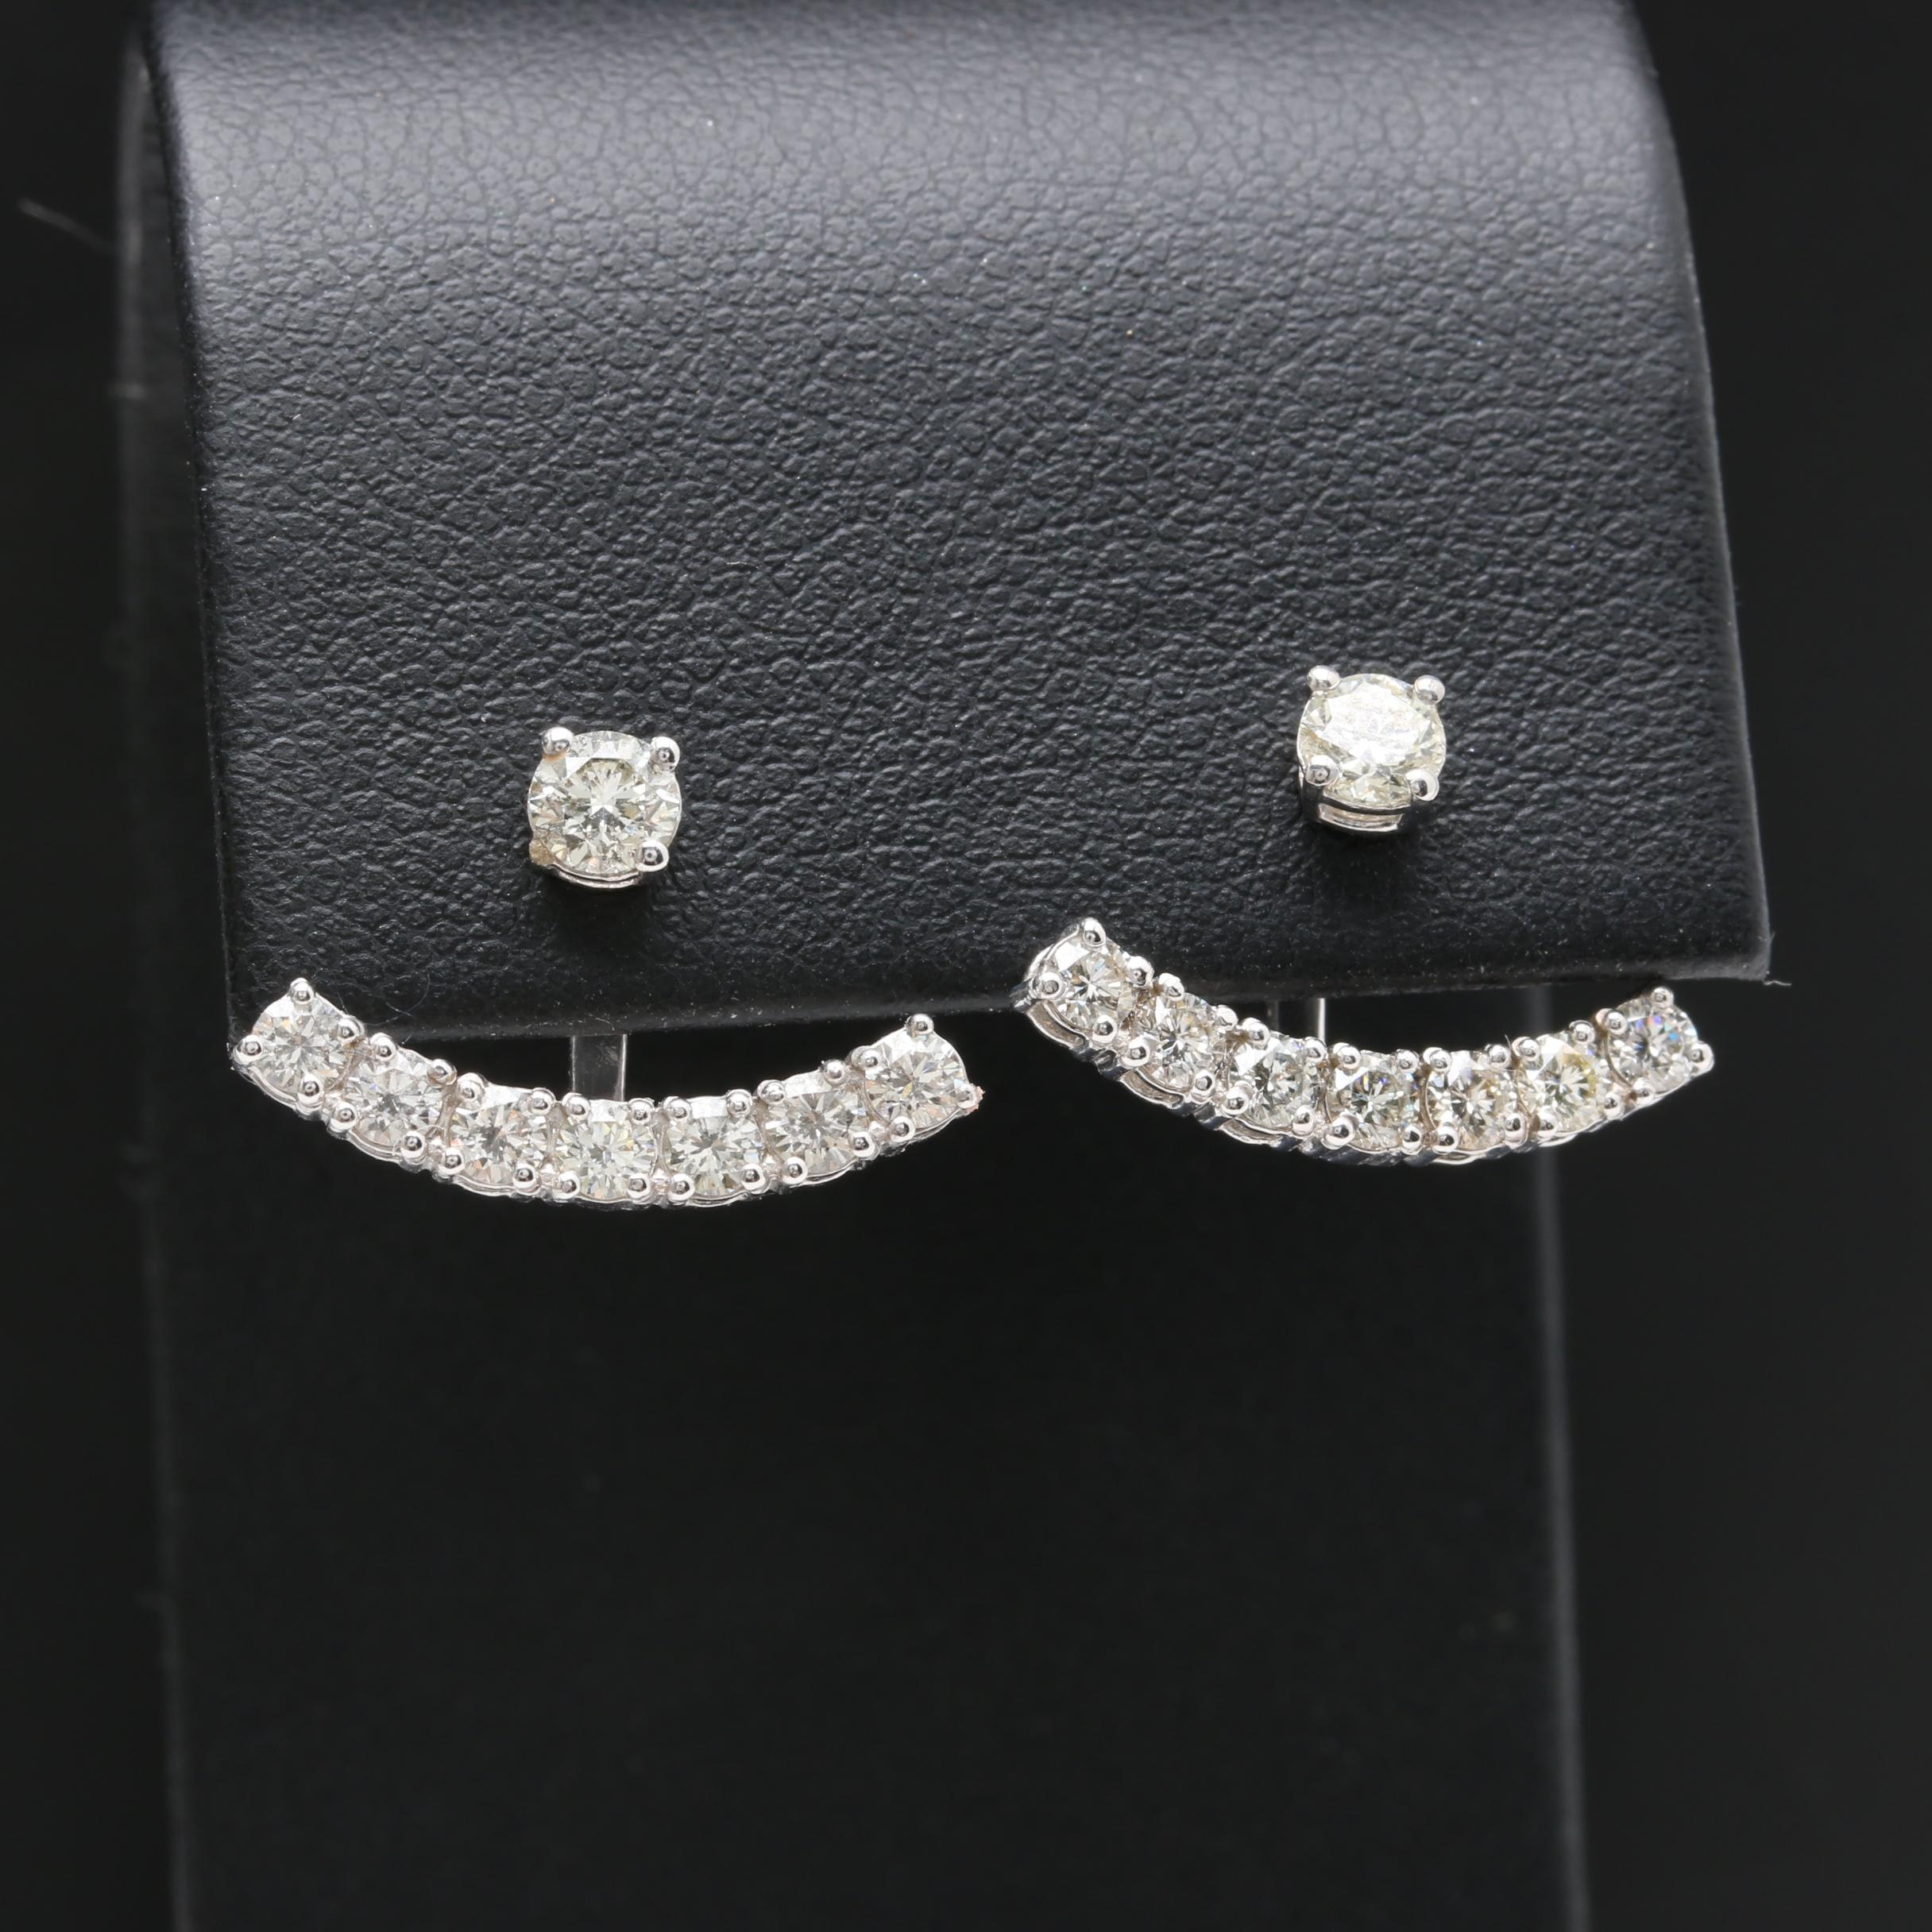 14K White Gold 1.18 CTW Diamond Earrings with Crawler Jackets